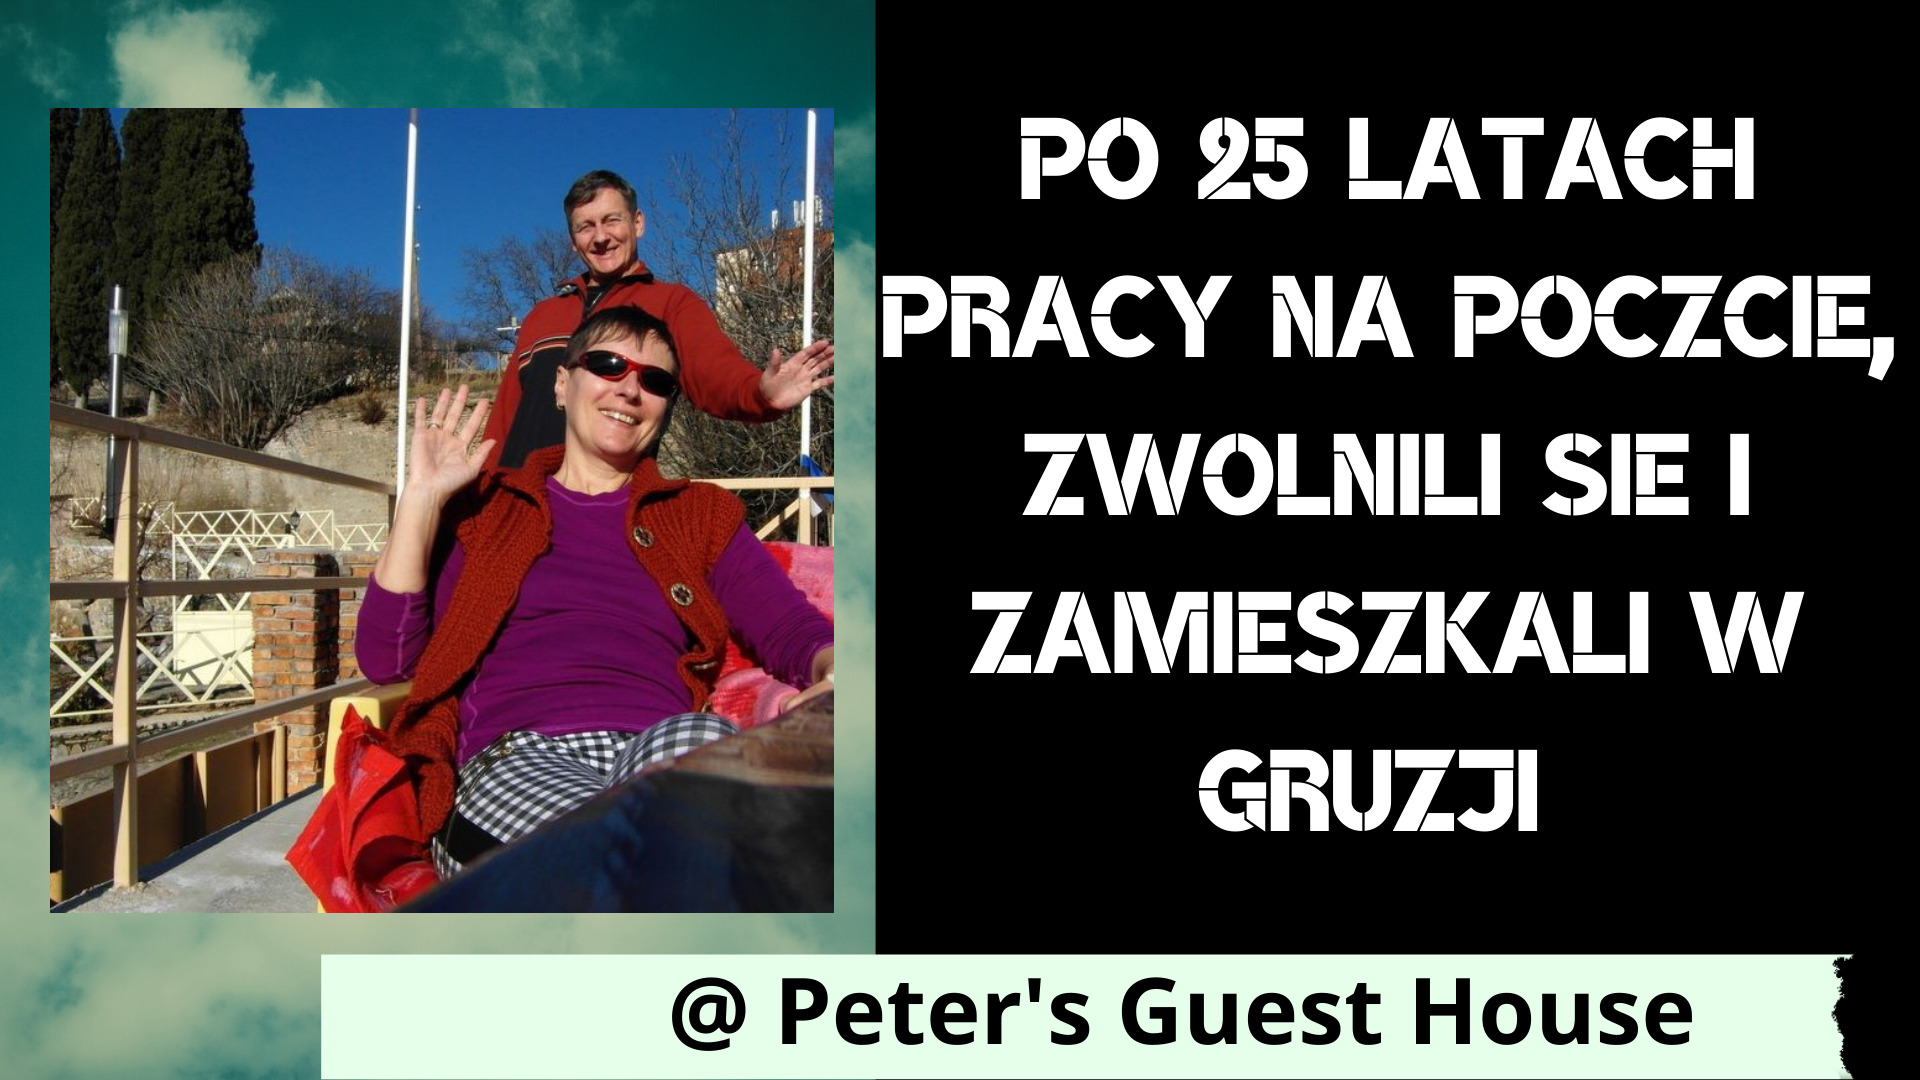 Peter's Guest House